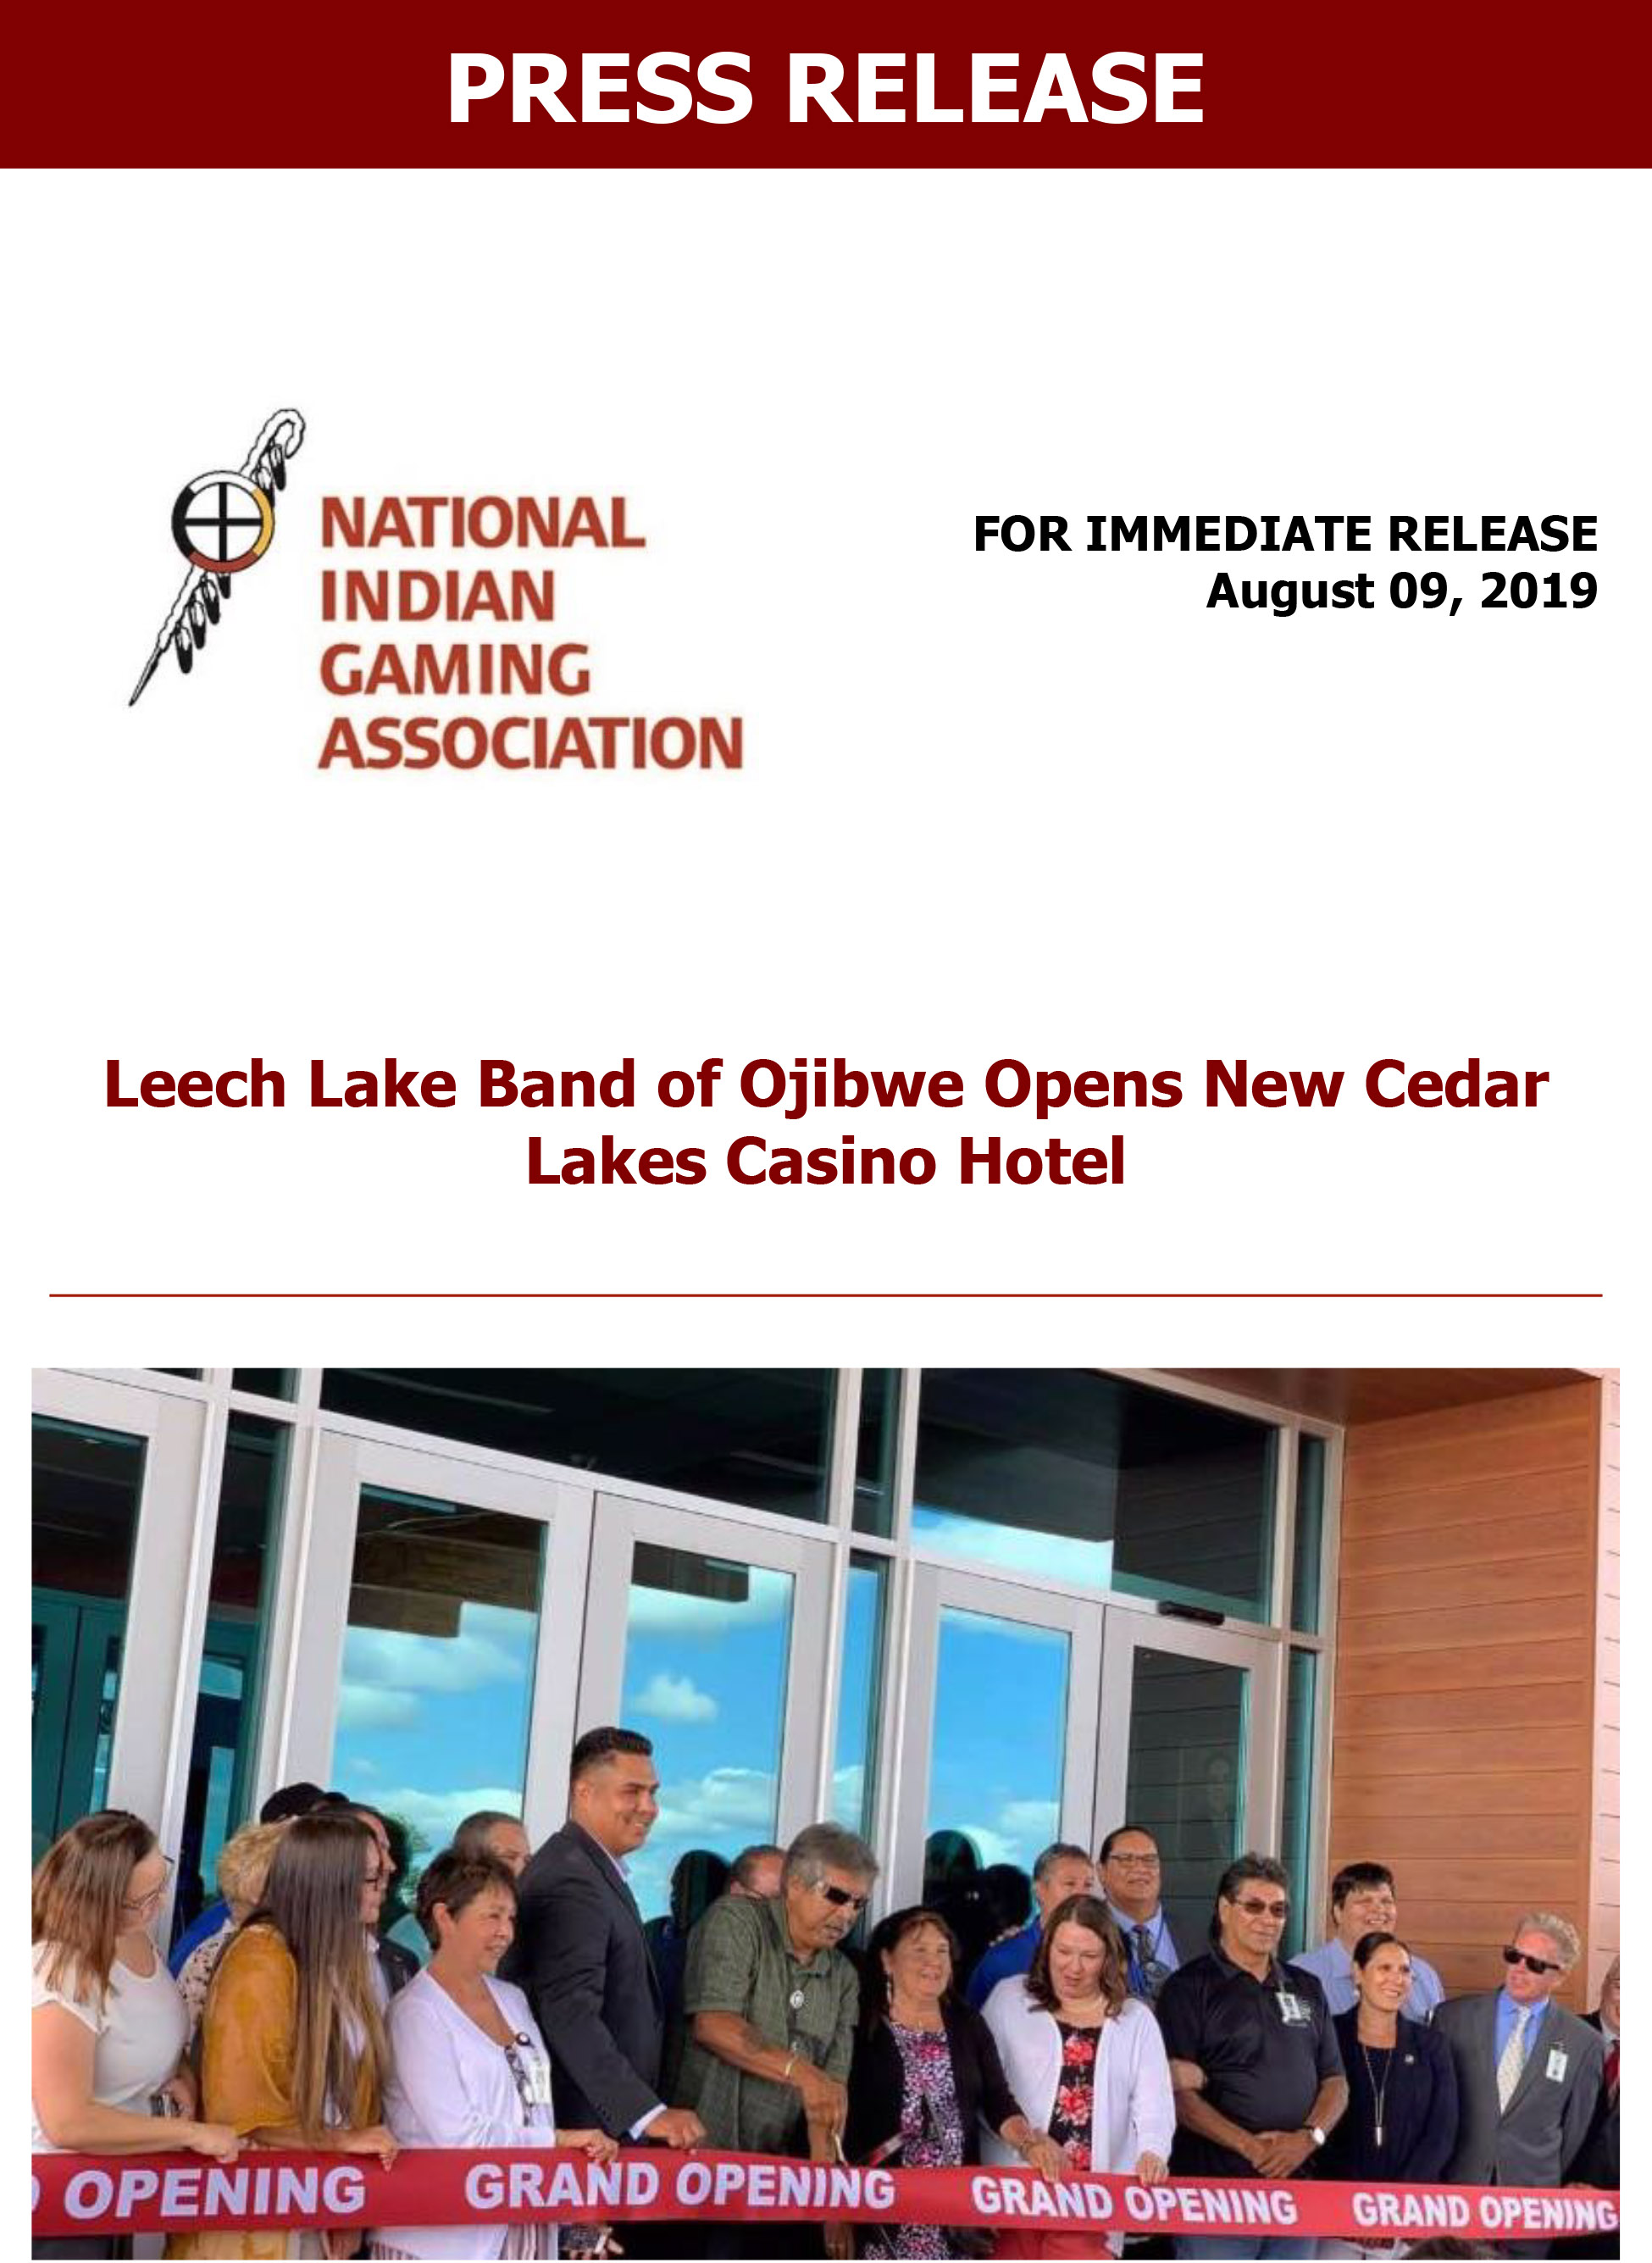 Leech Lake Band of Ojibwe Opens New Cedar Lakes Casino Hotel